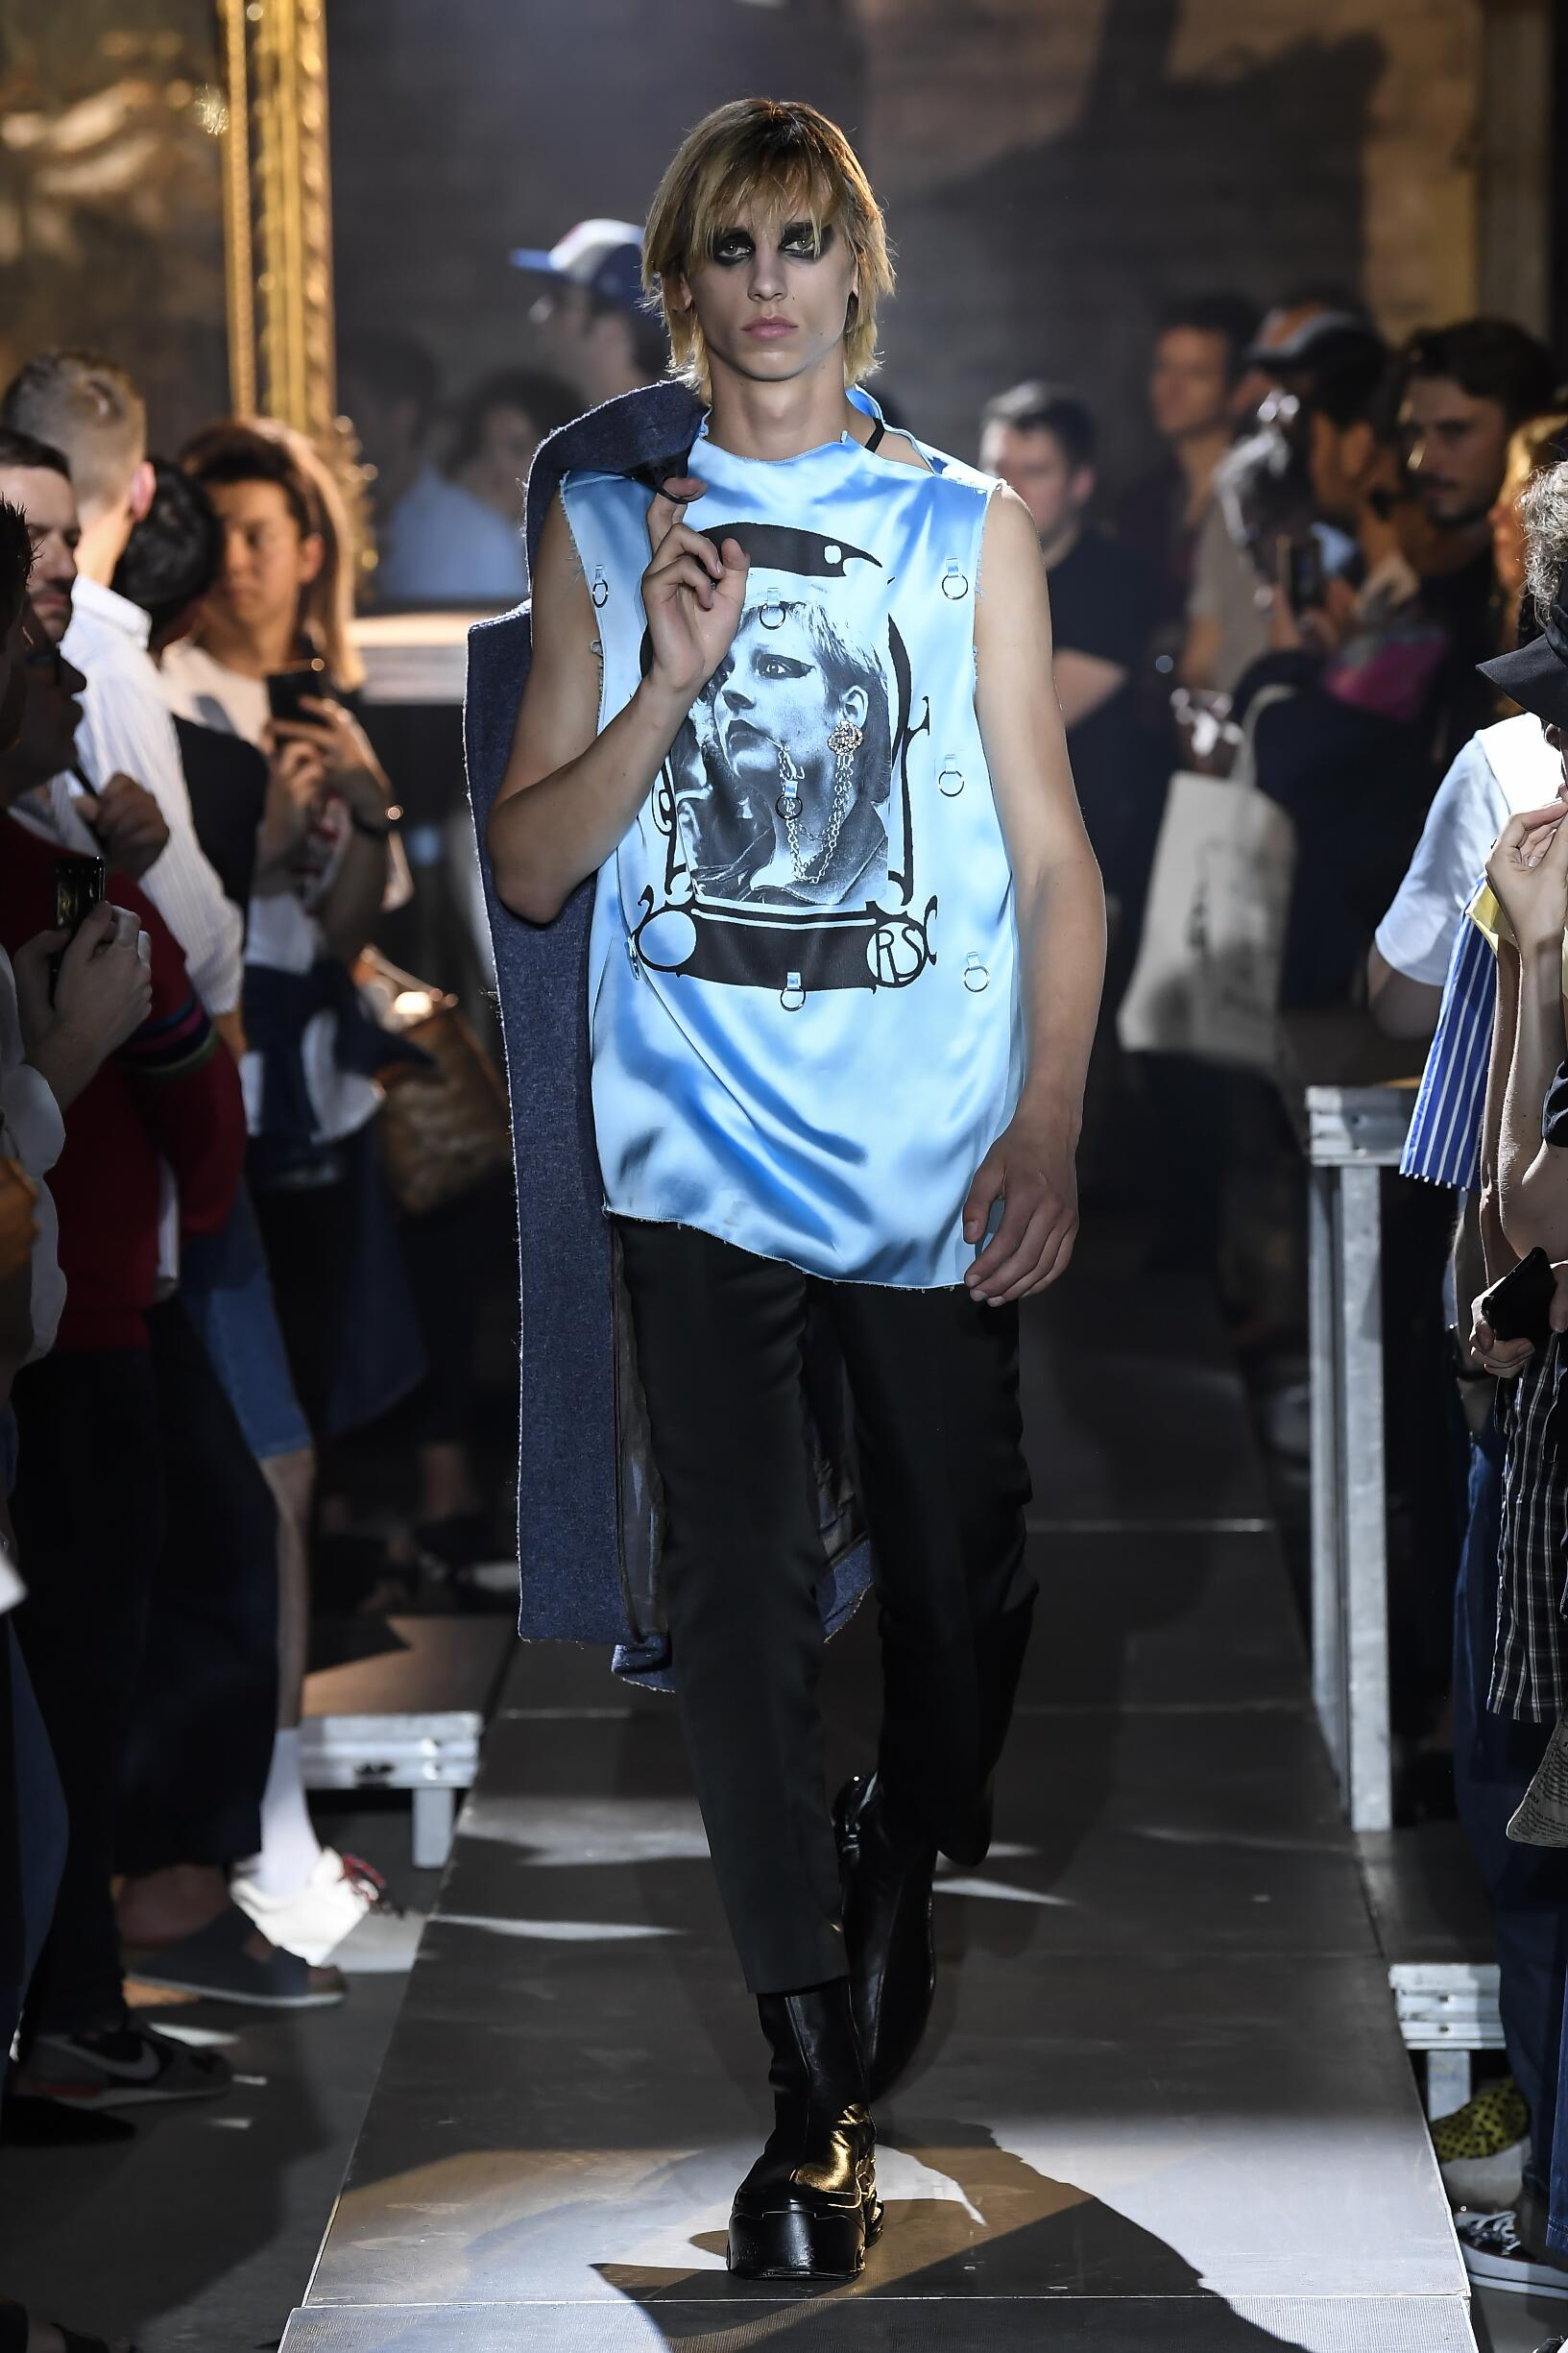 2019 Catwalk Raf Simons Man Fashion Show Summer